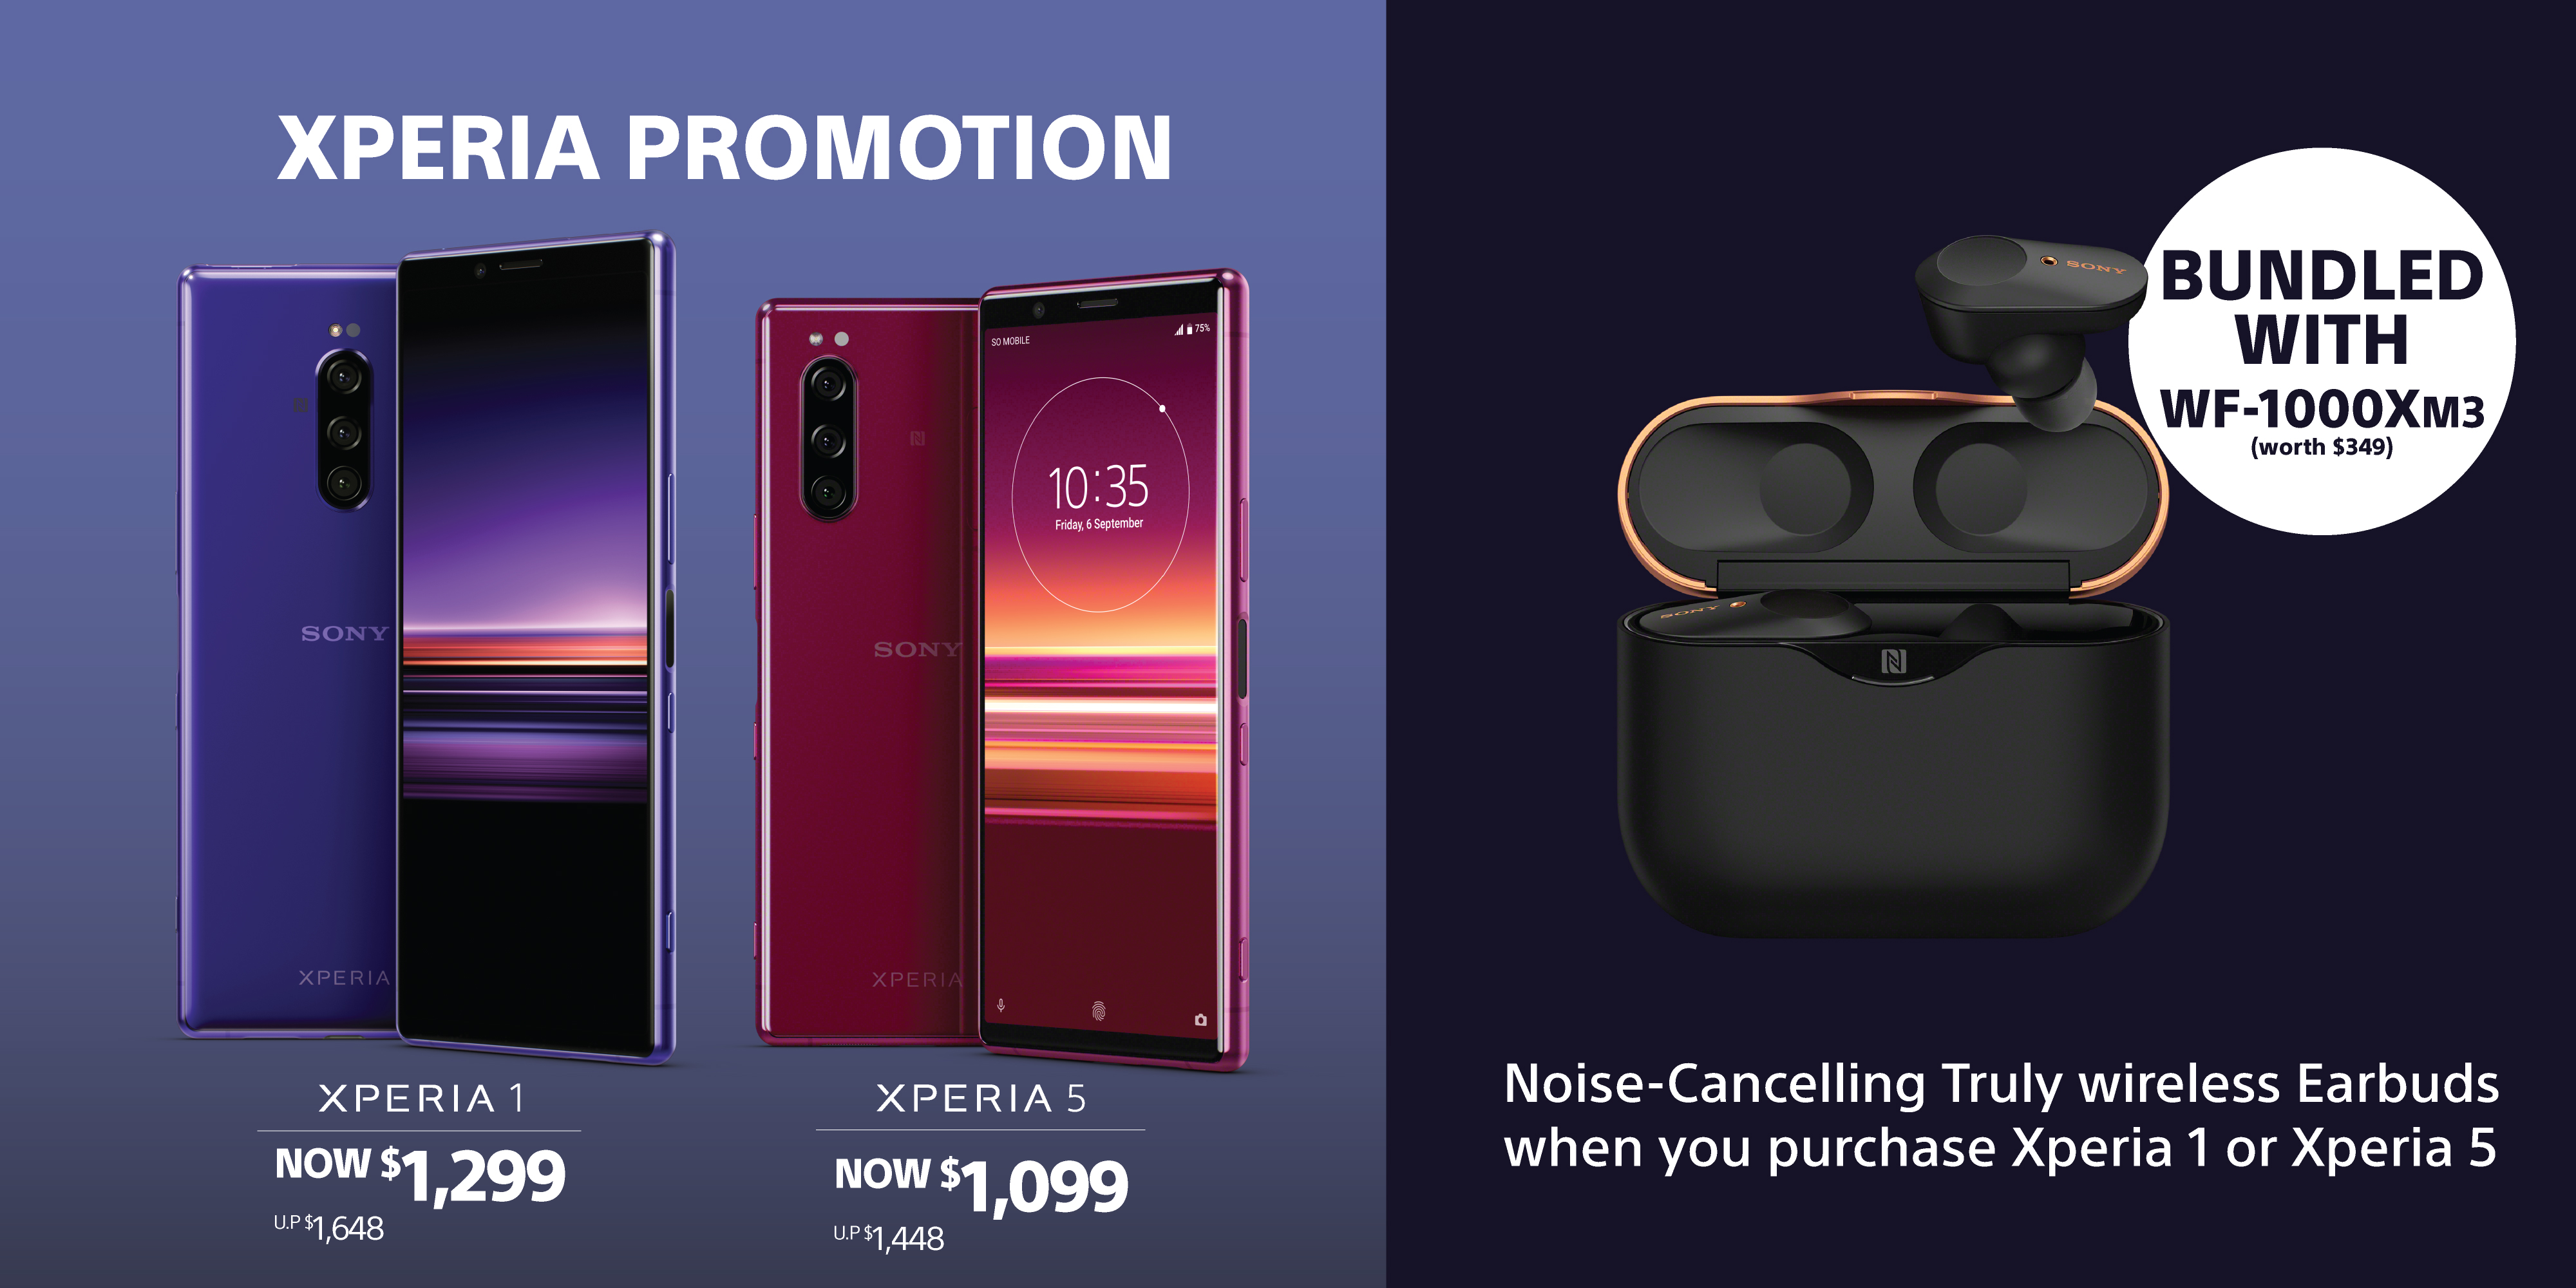 Xperia Promotion - Receive a free set of WF-1000XM3 Noise-Cancelling Truly Wireless Earbuds when you purchase Xperia 1 or Xperia 5.